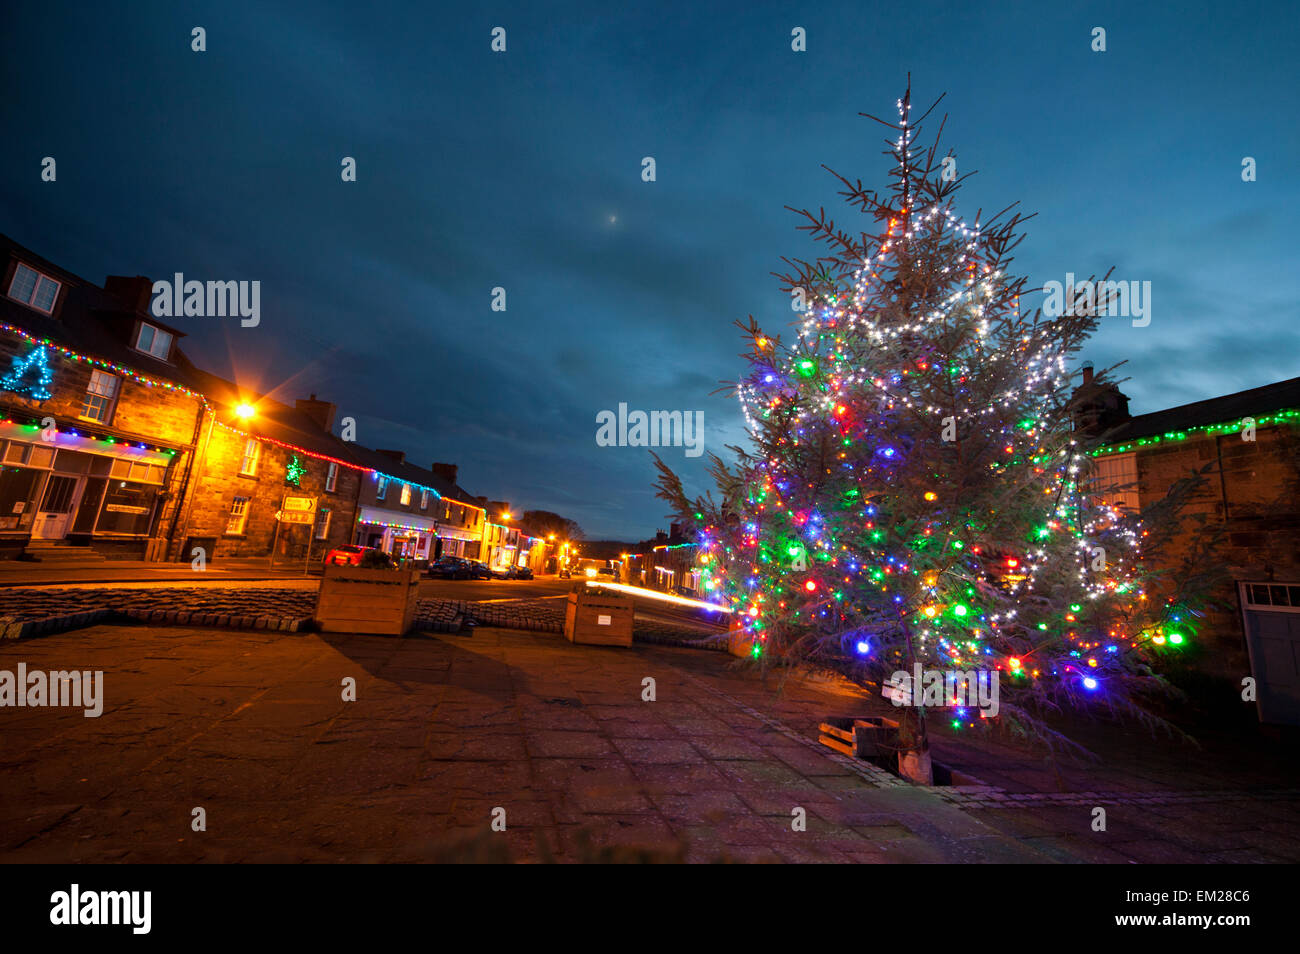 An outdoor tree decorated in colourful lights for christmas belford an outdoor tree decorated in colourful lights for christmas belford northumberland england aloadofball Image collections